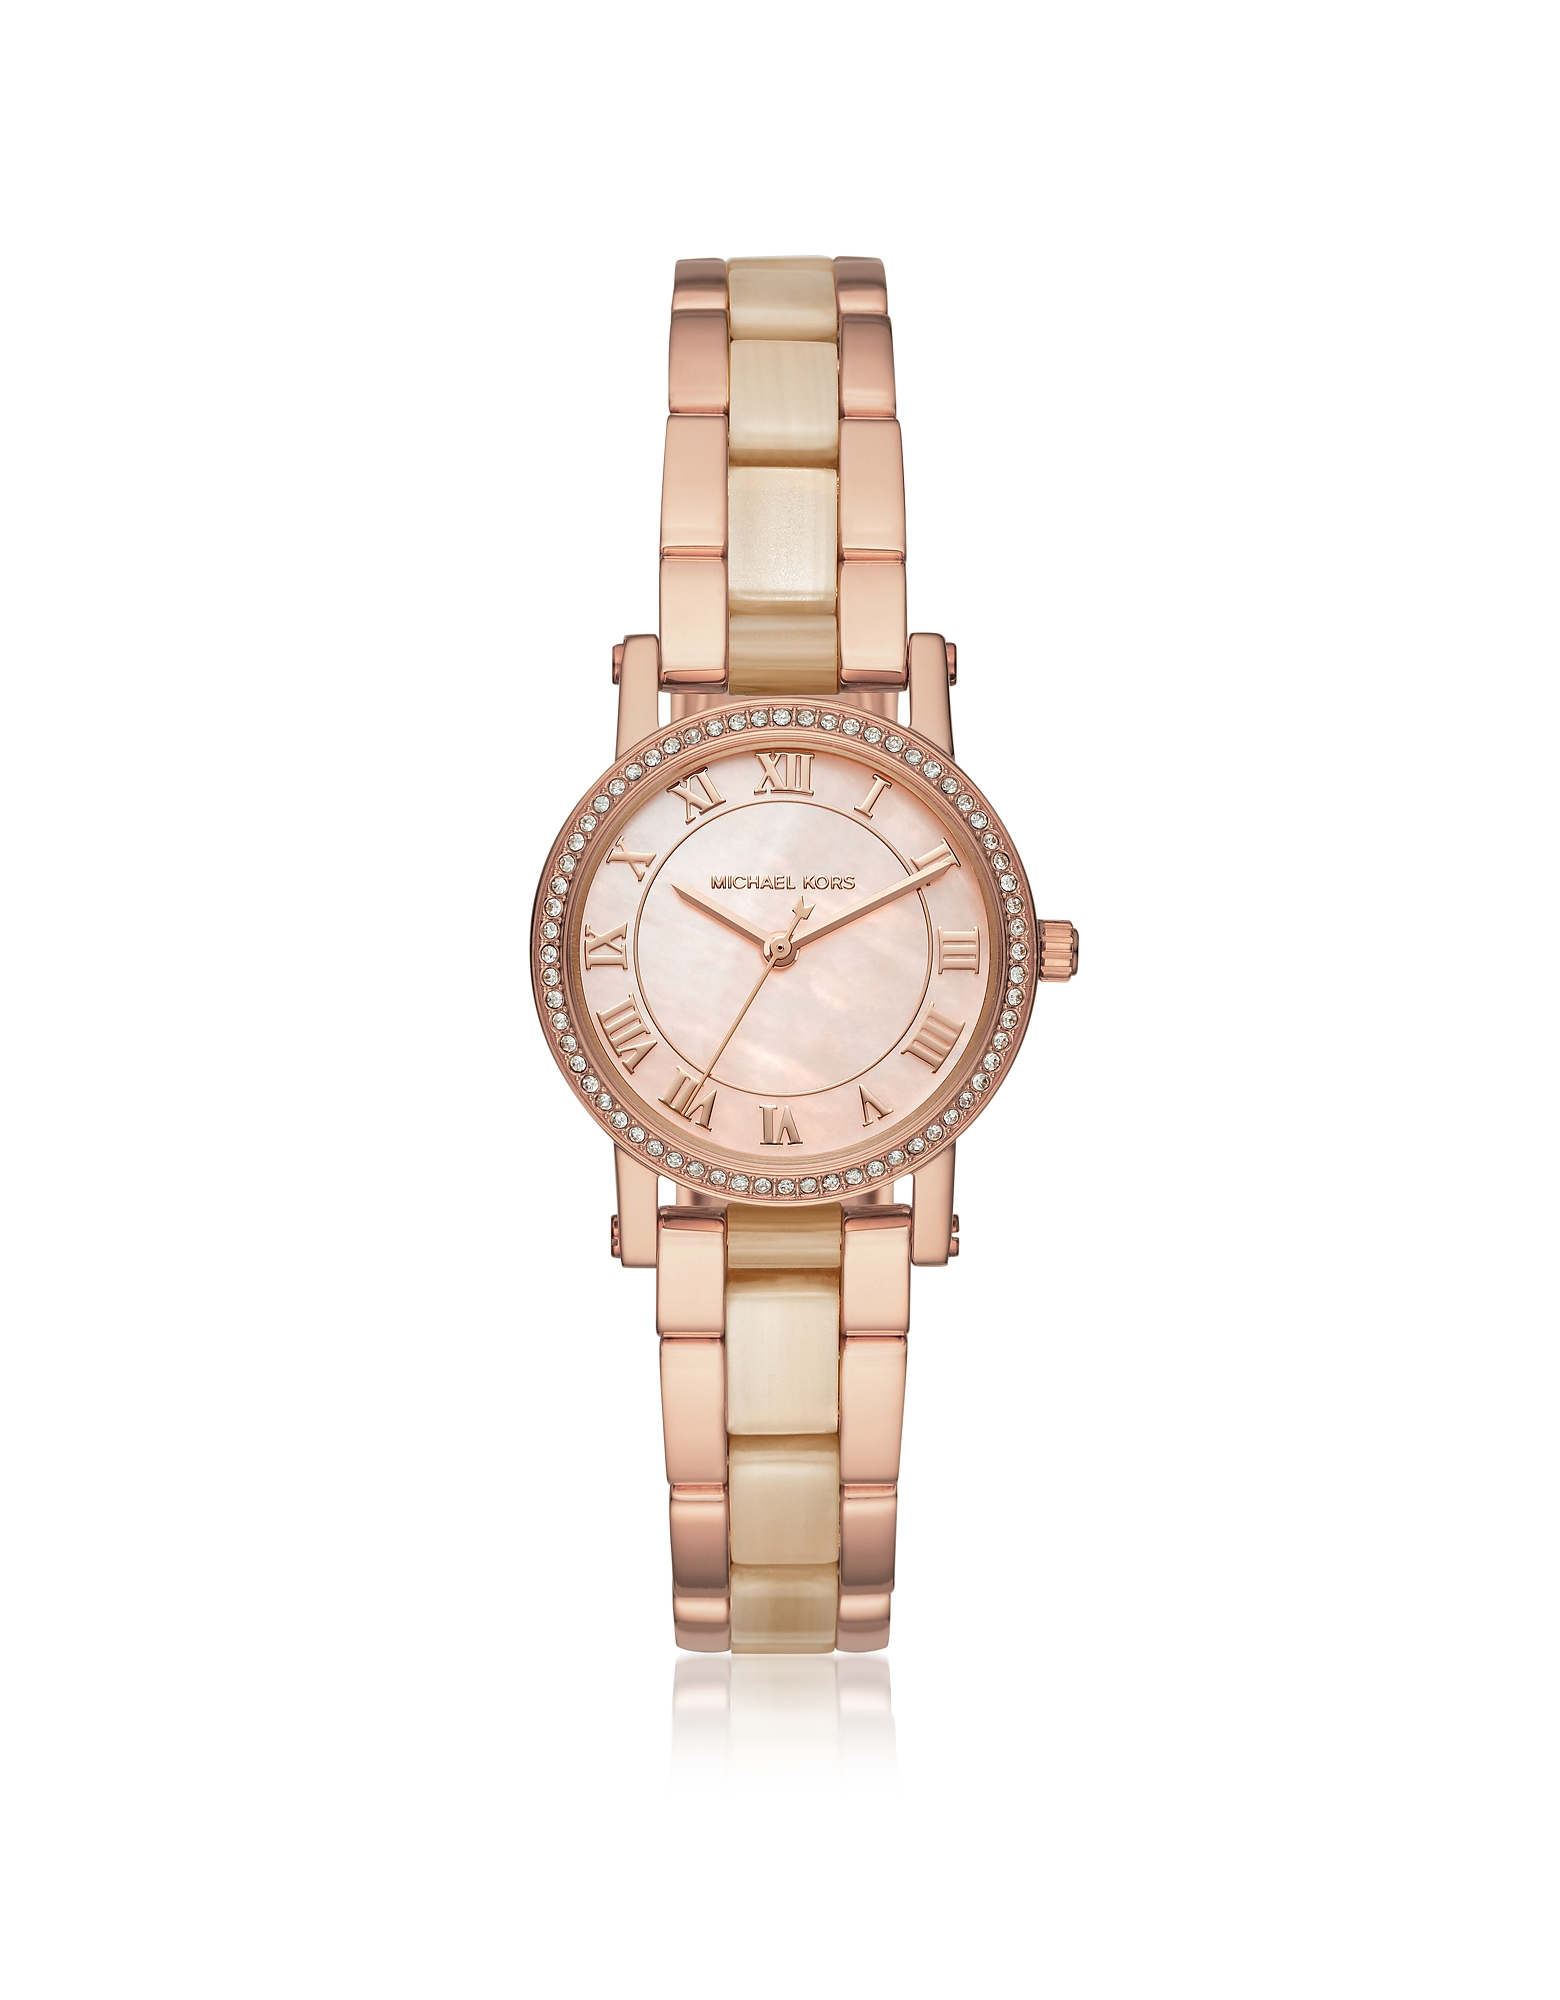 Michael Kors Women's Watches, Petite Norie Rose Goldtone Stainless Steel Women's Watch